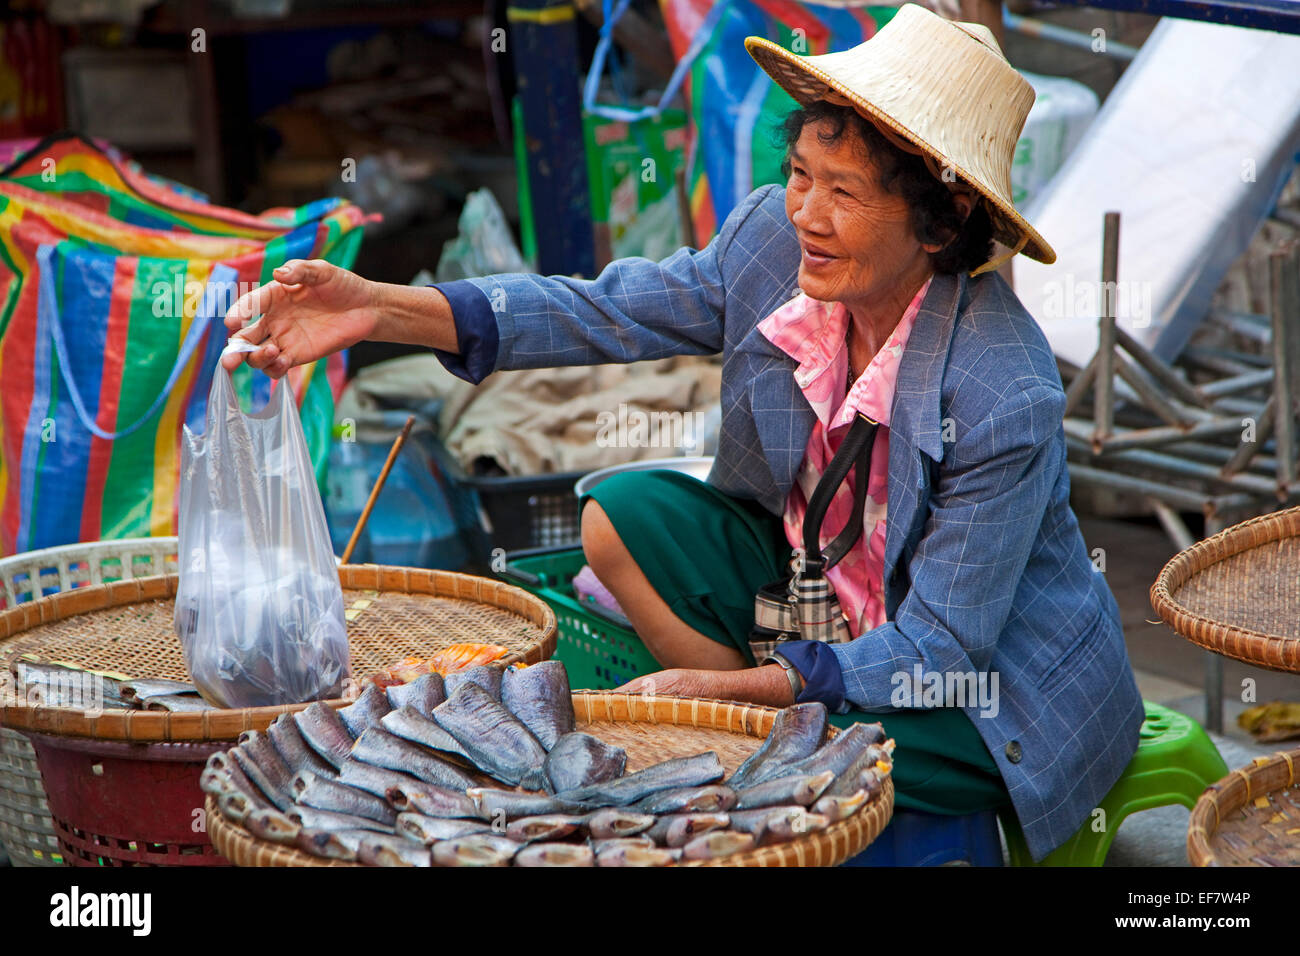 Elderly Thai woman with traditional palm wicker hat selling fish at food market in Ayutthaya, Thailand - Stock Image